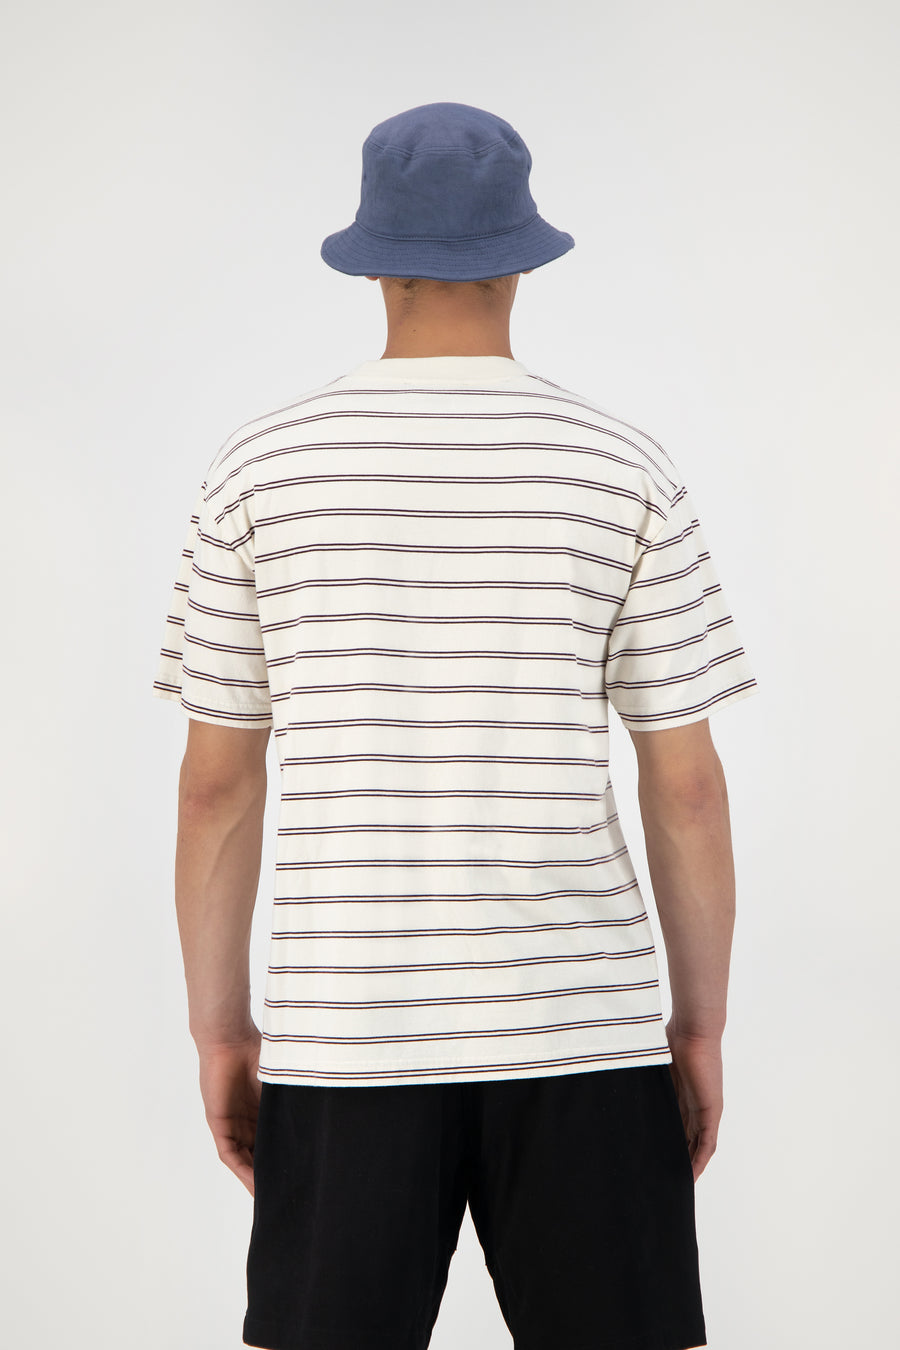 ØLÅF Mini Stripe Tee <br>White / Bordeaux